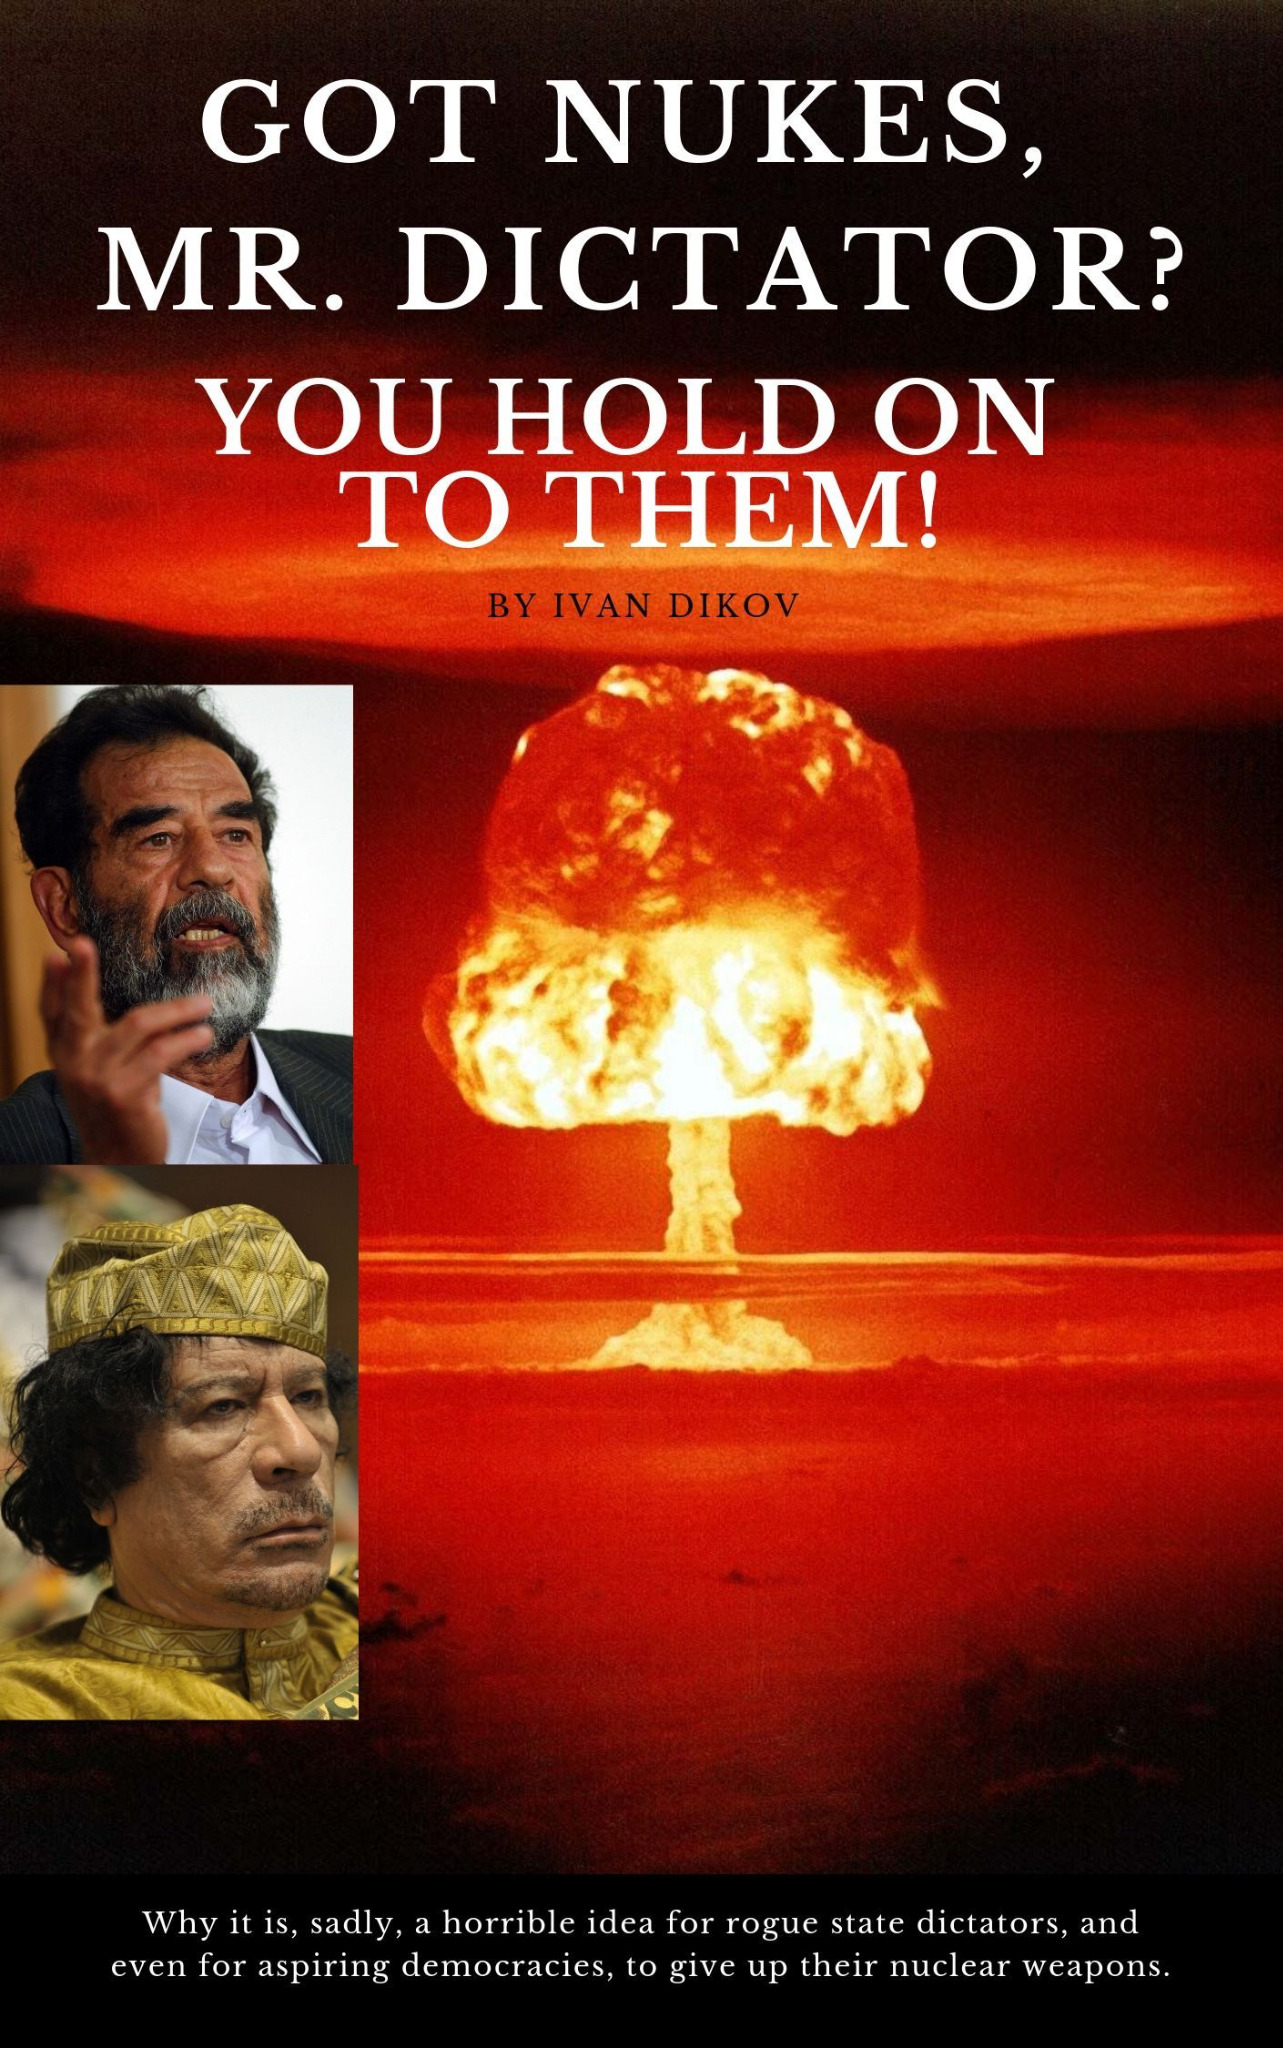 Got Nukes, Mr. Dictator? You Hold On to Them!